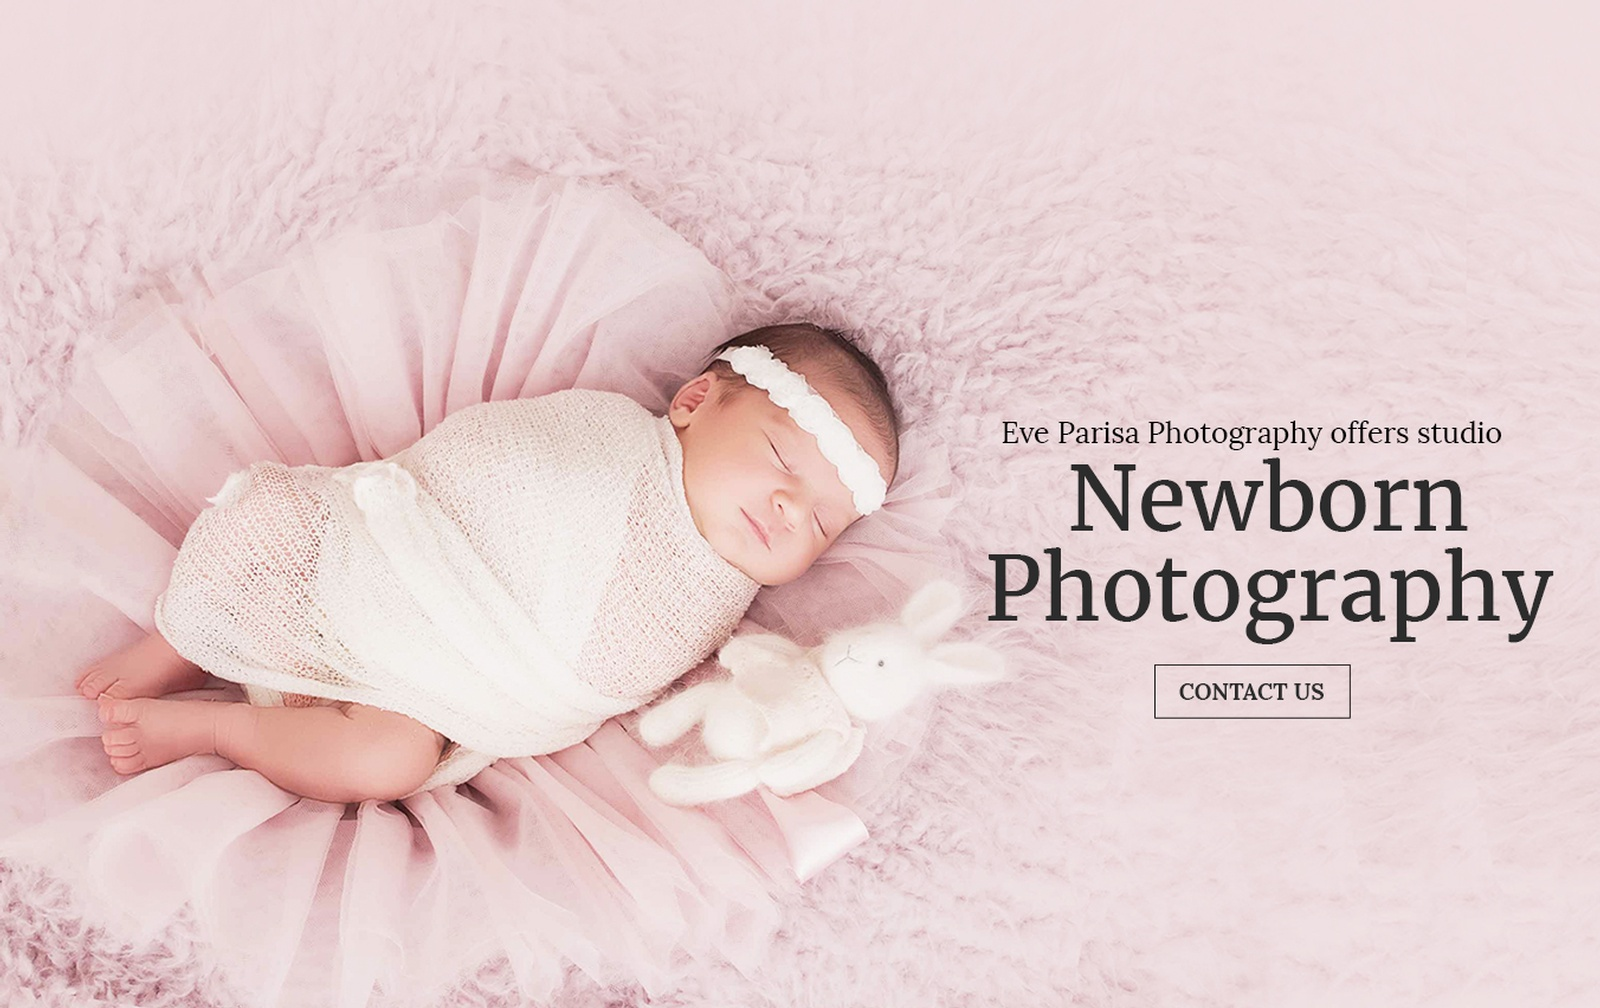 Eve Parisa Photography offers Studio Newborn Photography